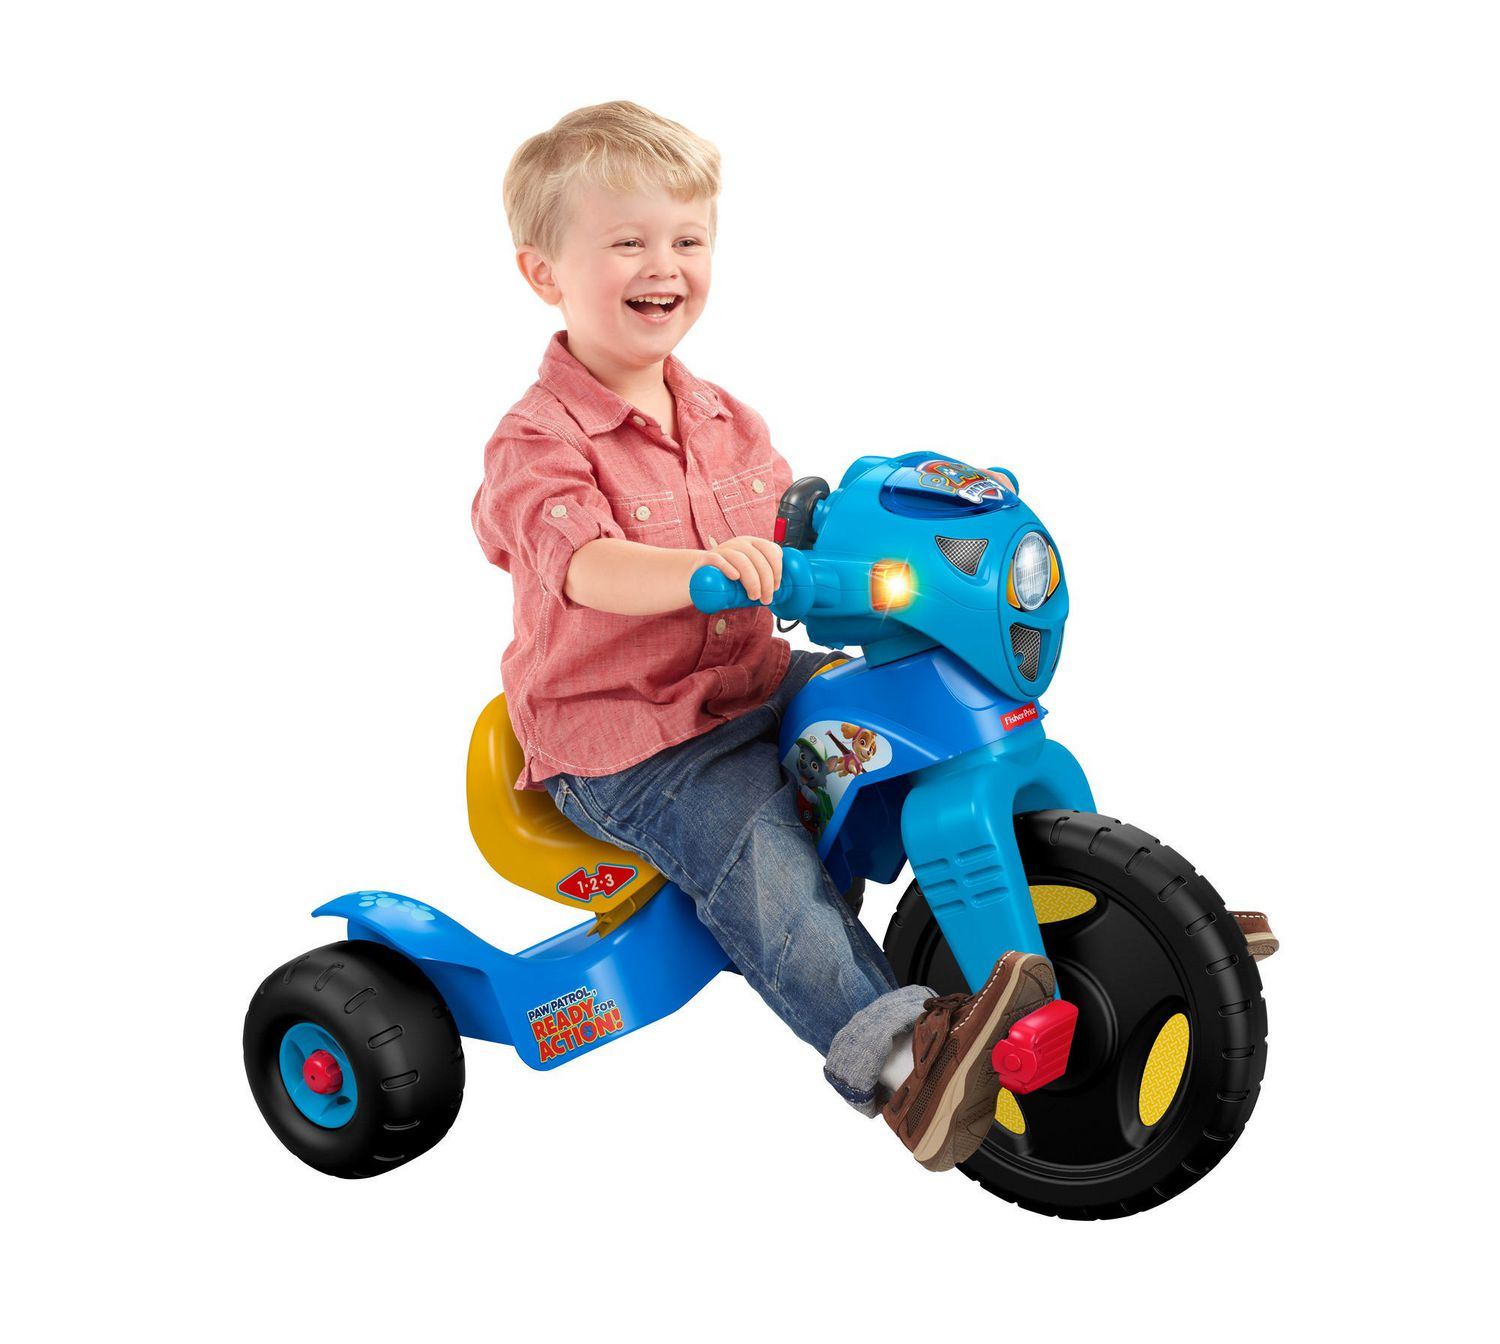 Amazing Fisher Price Ride On Toys For Toddlers Pics